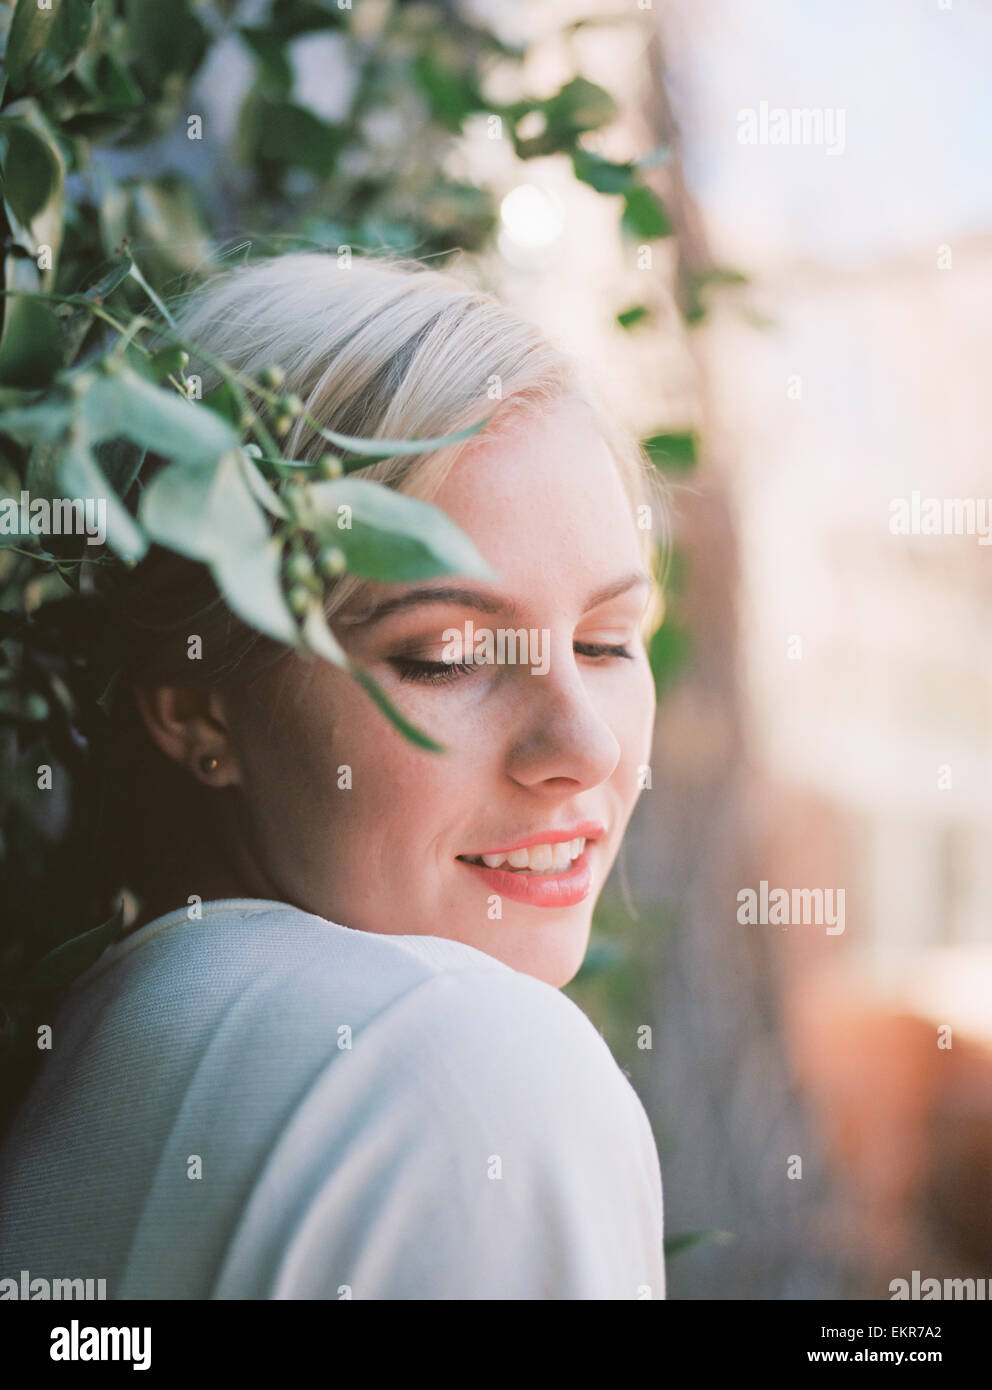 A pretty woman with a half smile, leaning against a vine growing up a wall. - Stock Image